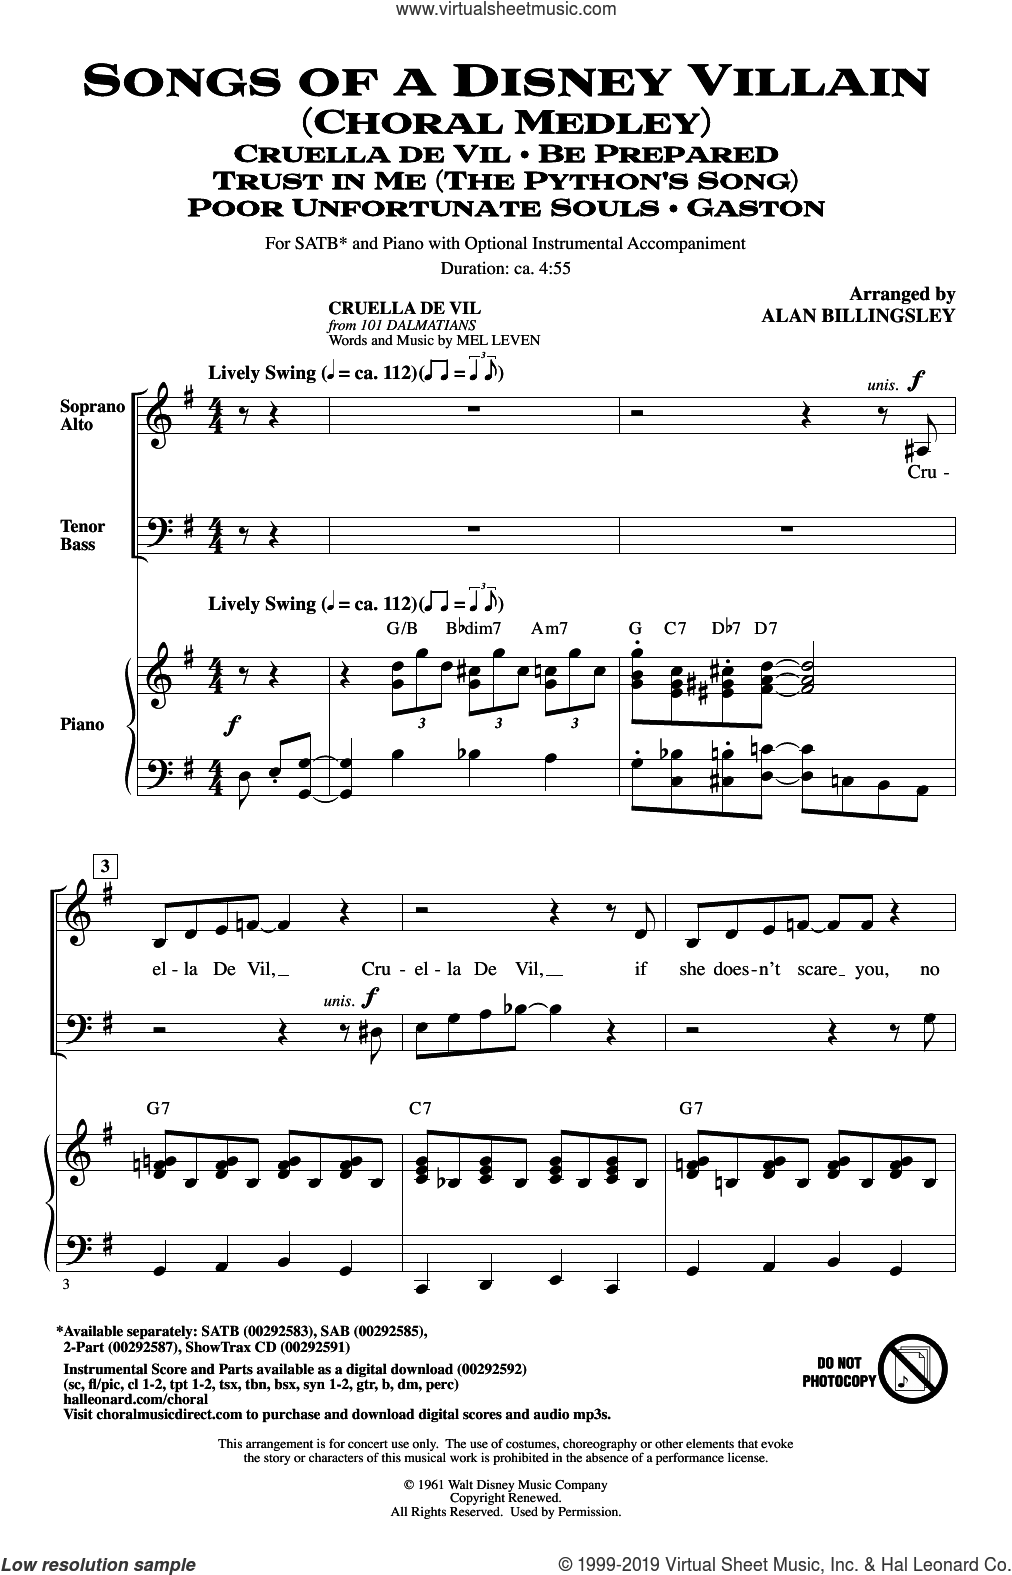 Songs Of A Disney Villain (Choral Medley) sheet music for choir (SATB: soprano, alto, tenor, bass) by Elton John & Tim Rice, Alan Billingsley, Elton John and Tim Rice, intermediate skill level